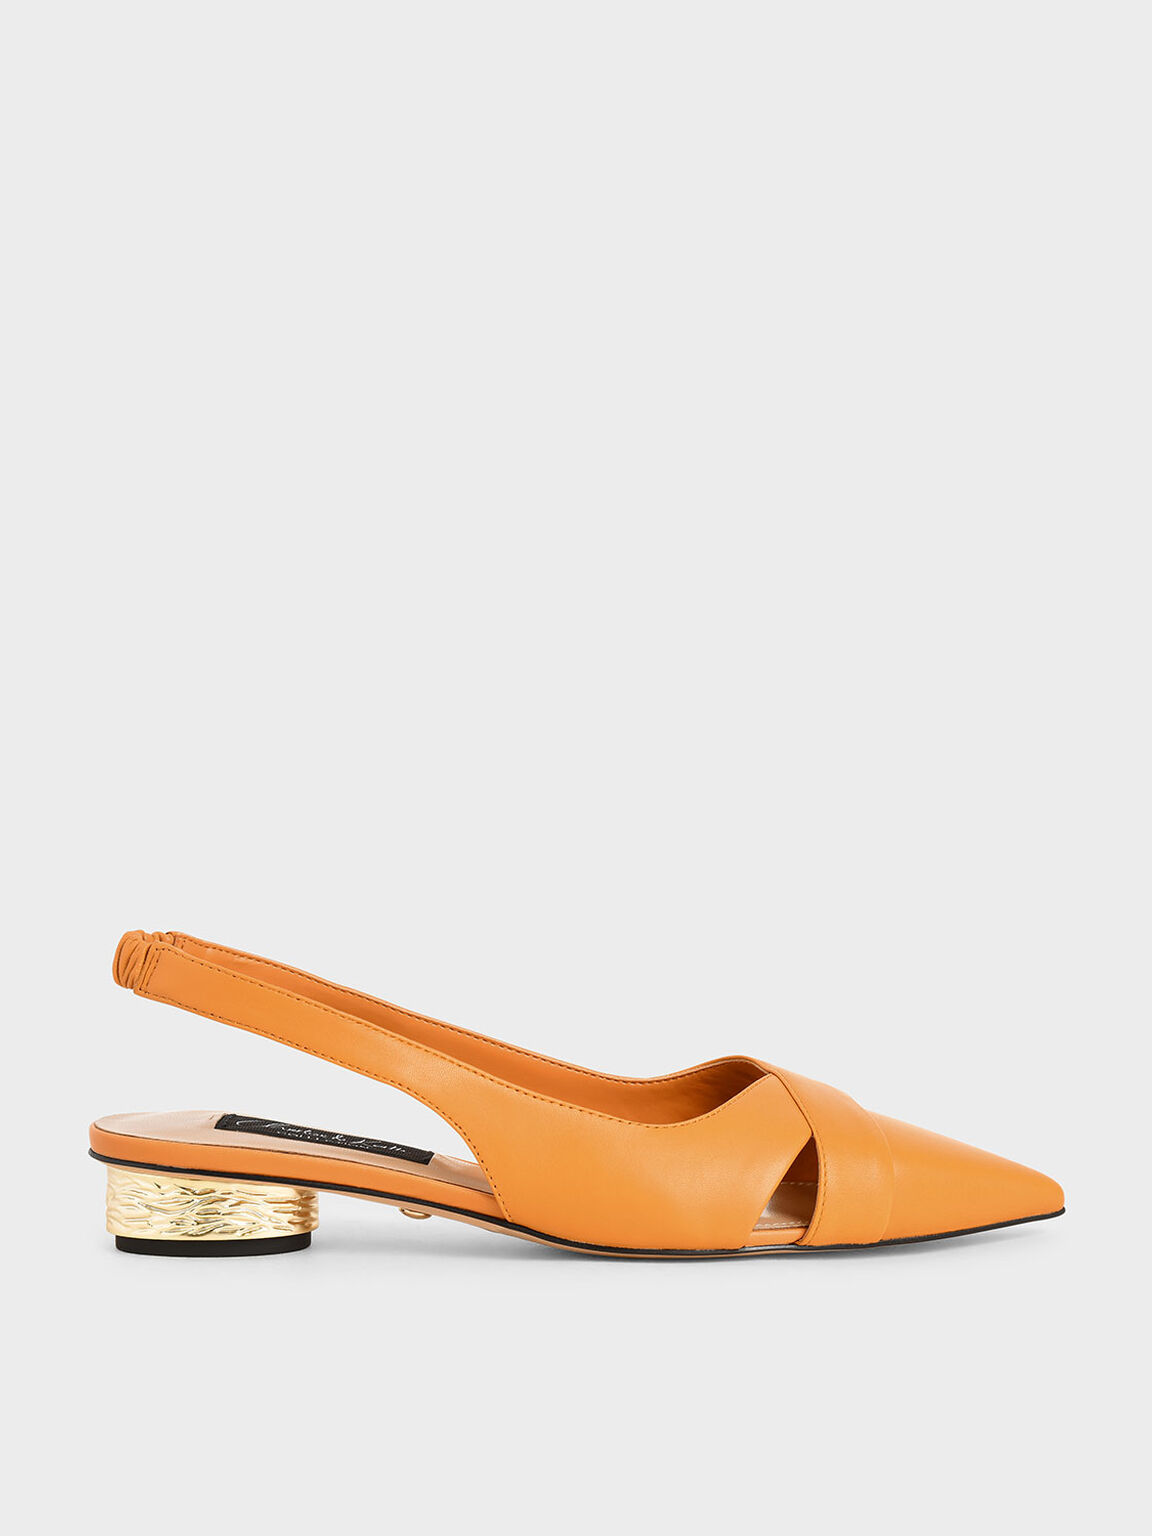 Leather Slingback Pumps, Orange, hi-res